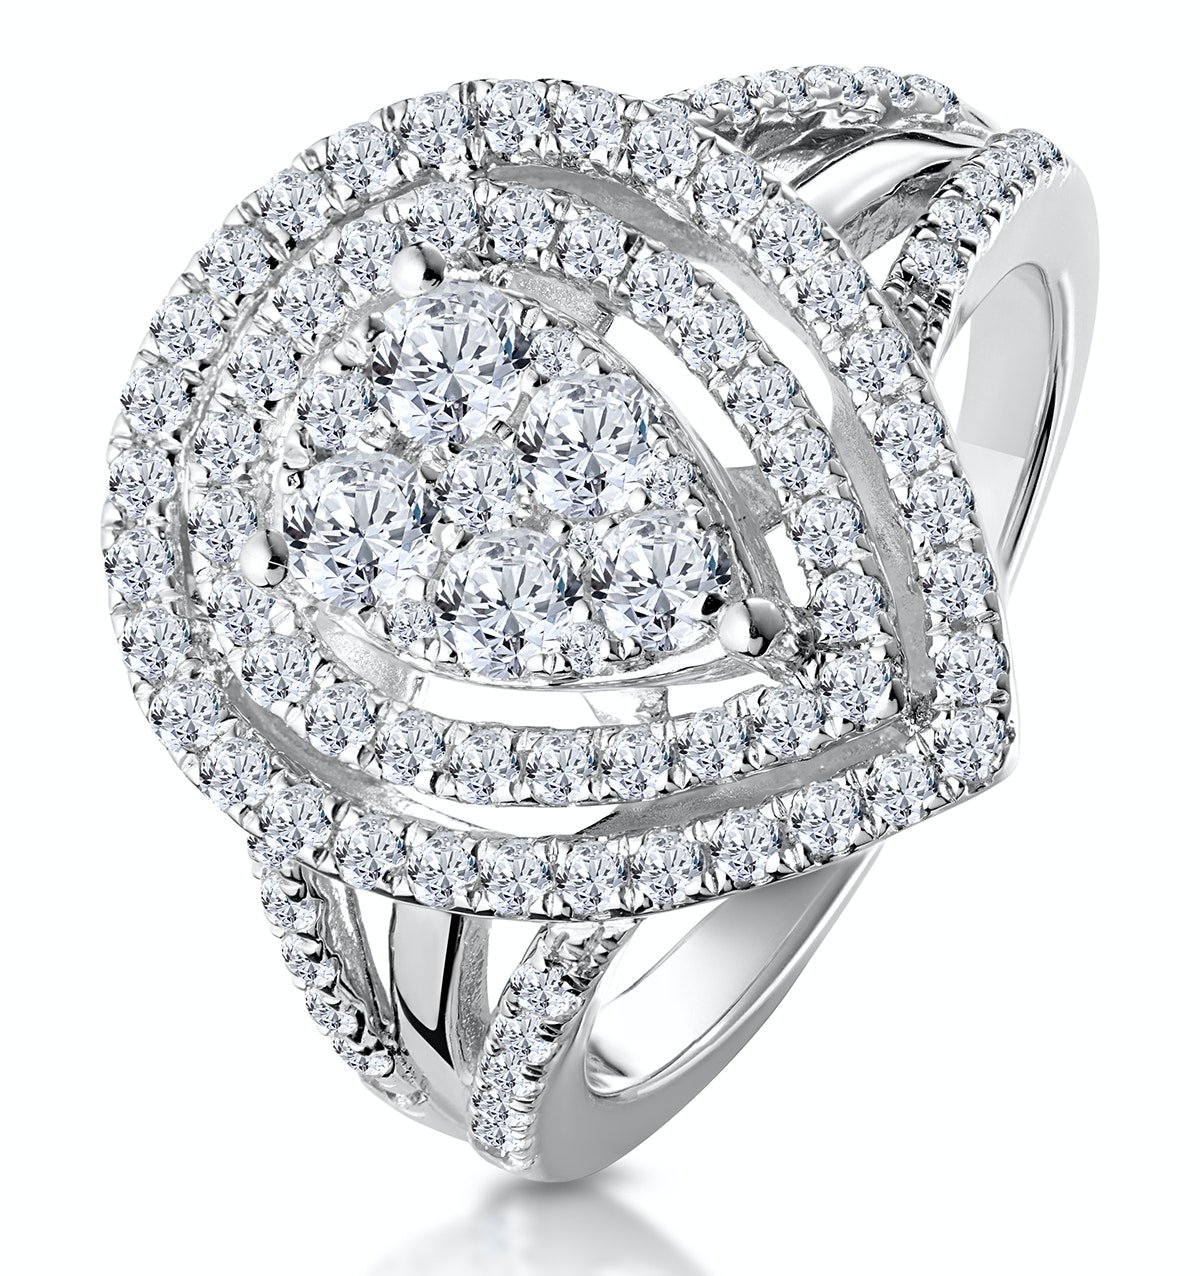 Calice Diamond Pave Pear Shape Halo Ring 1.30ct in 18K White Gold